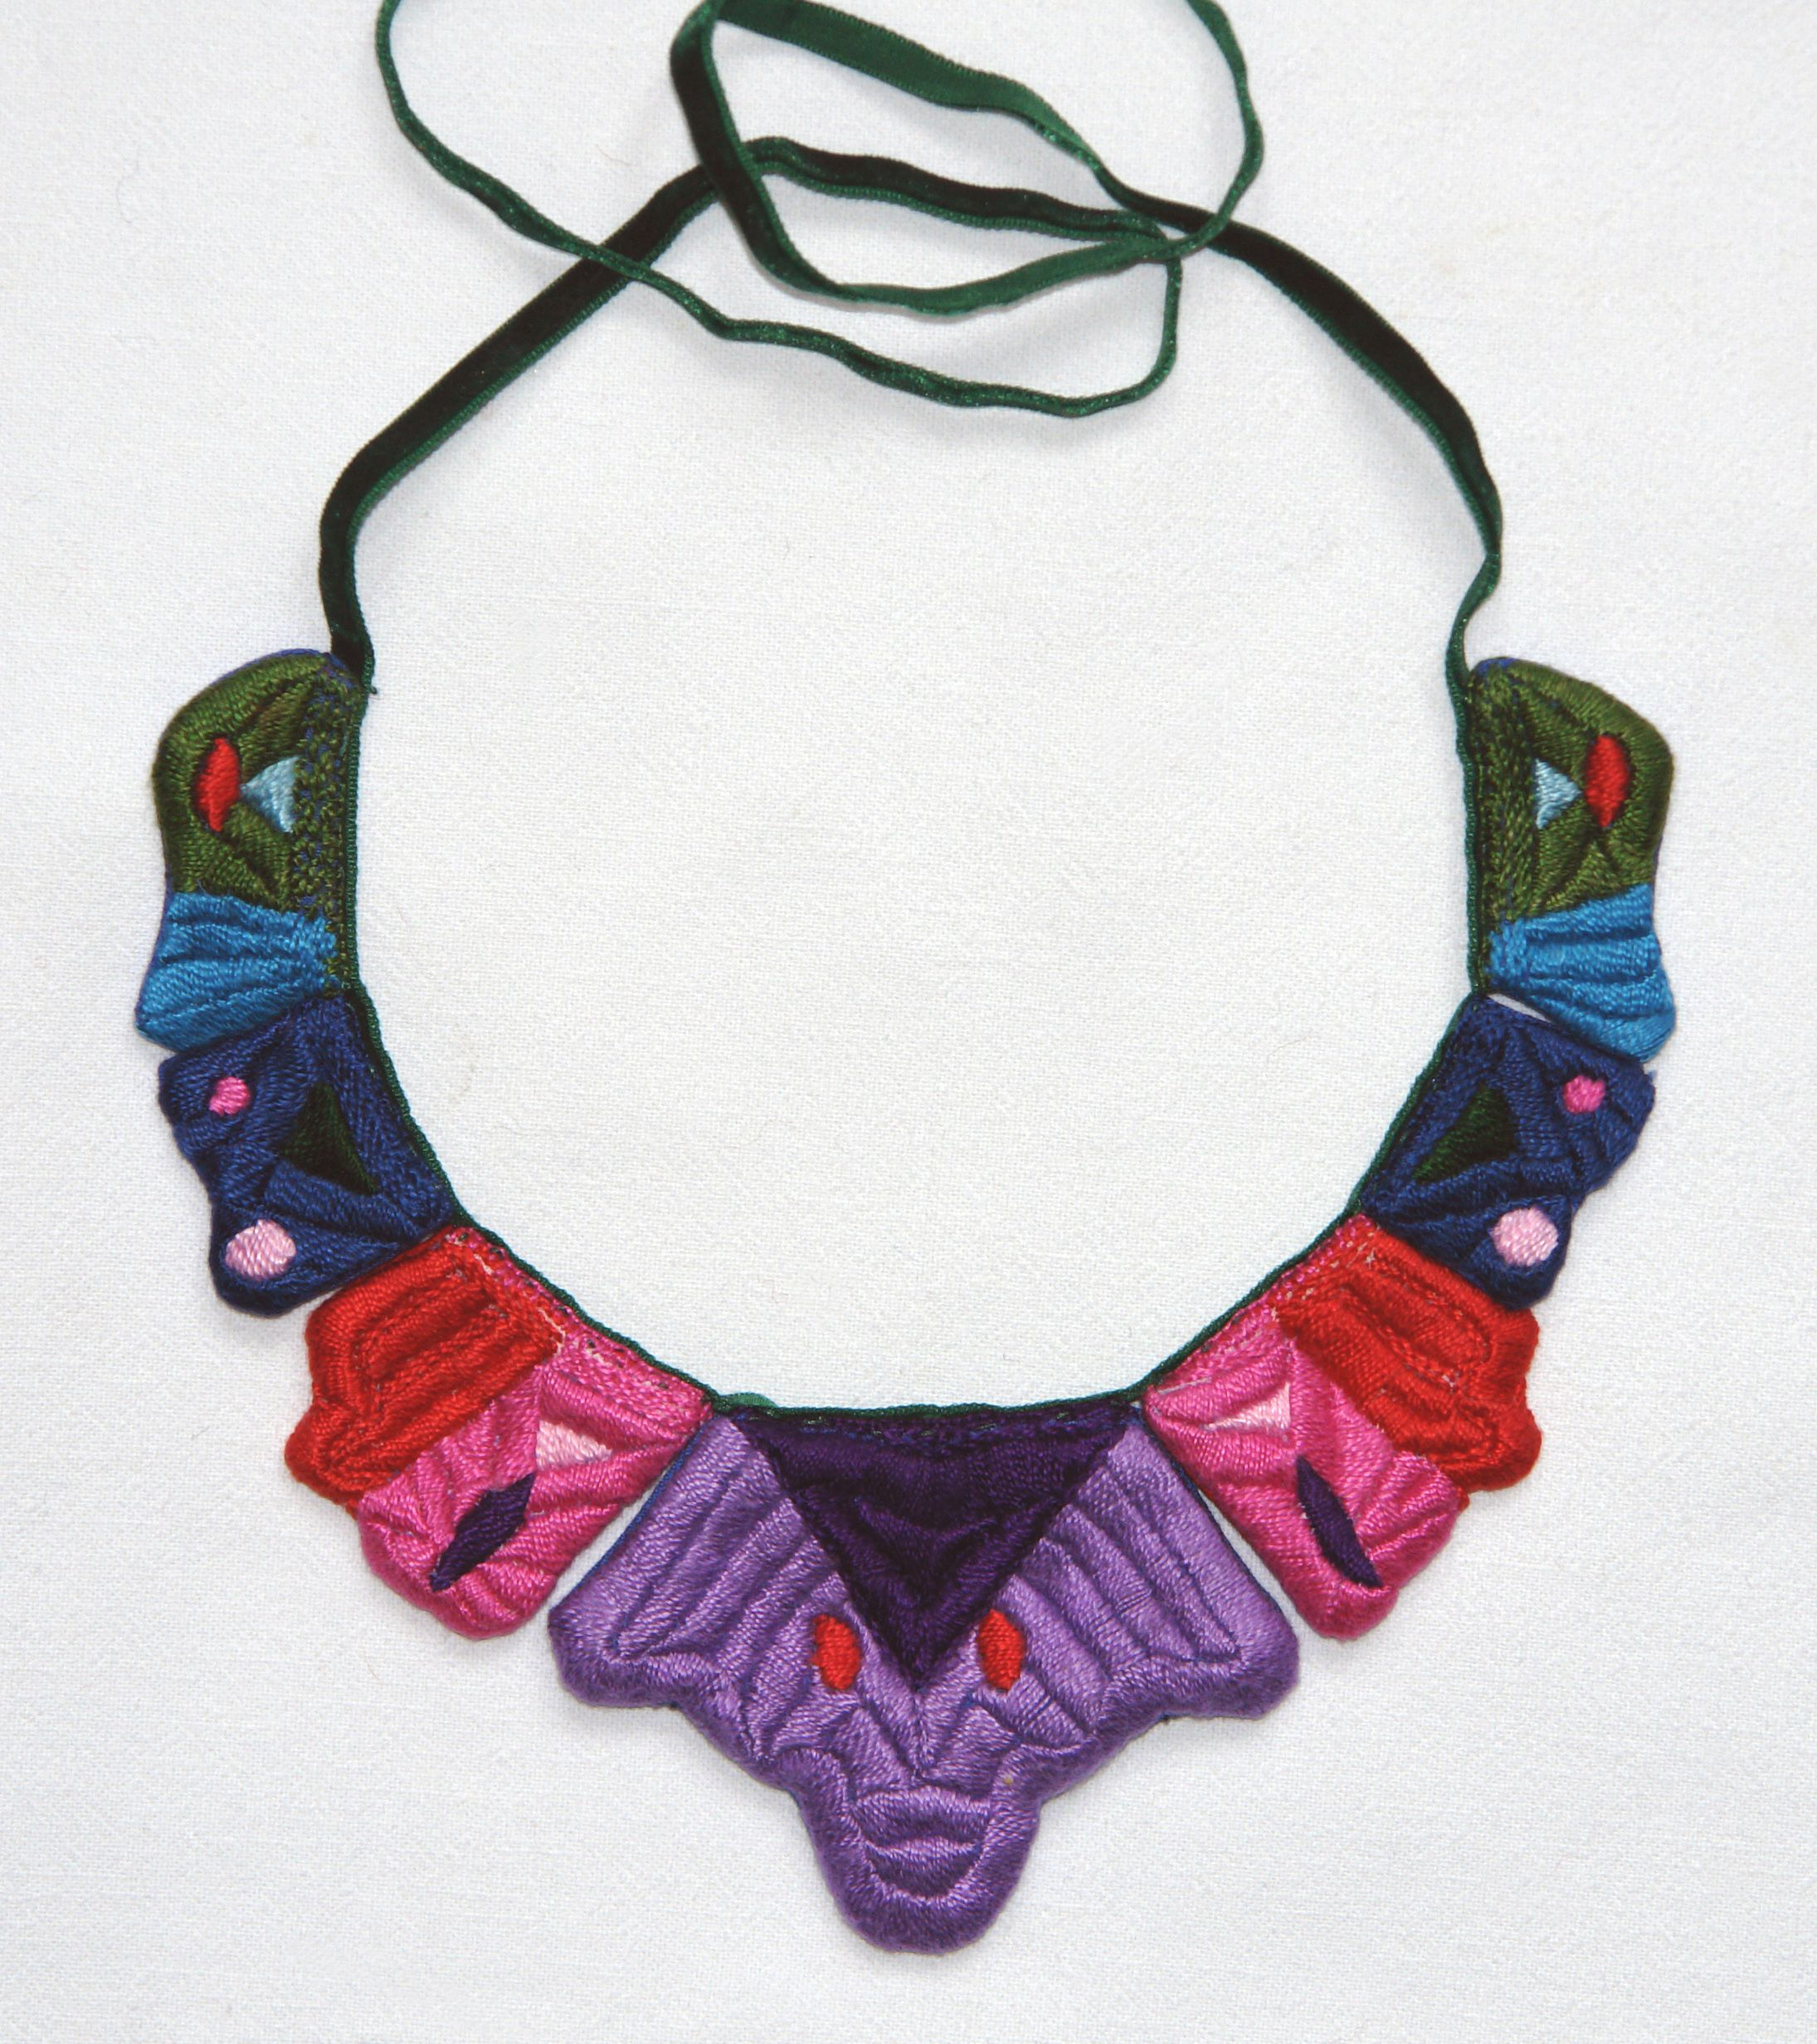 gifts glass handmade for beaded necklace her soutache bead lovely ideas beautiful textile